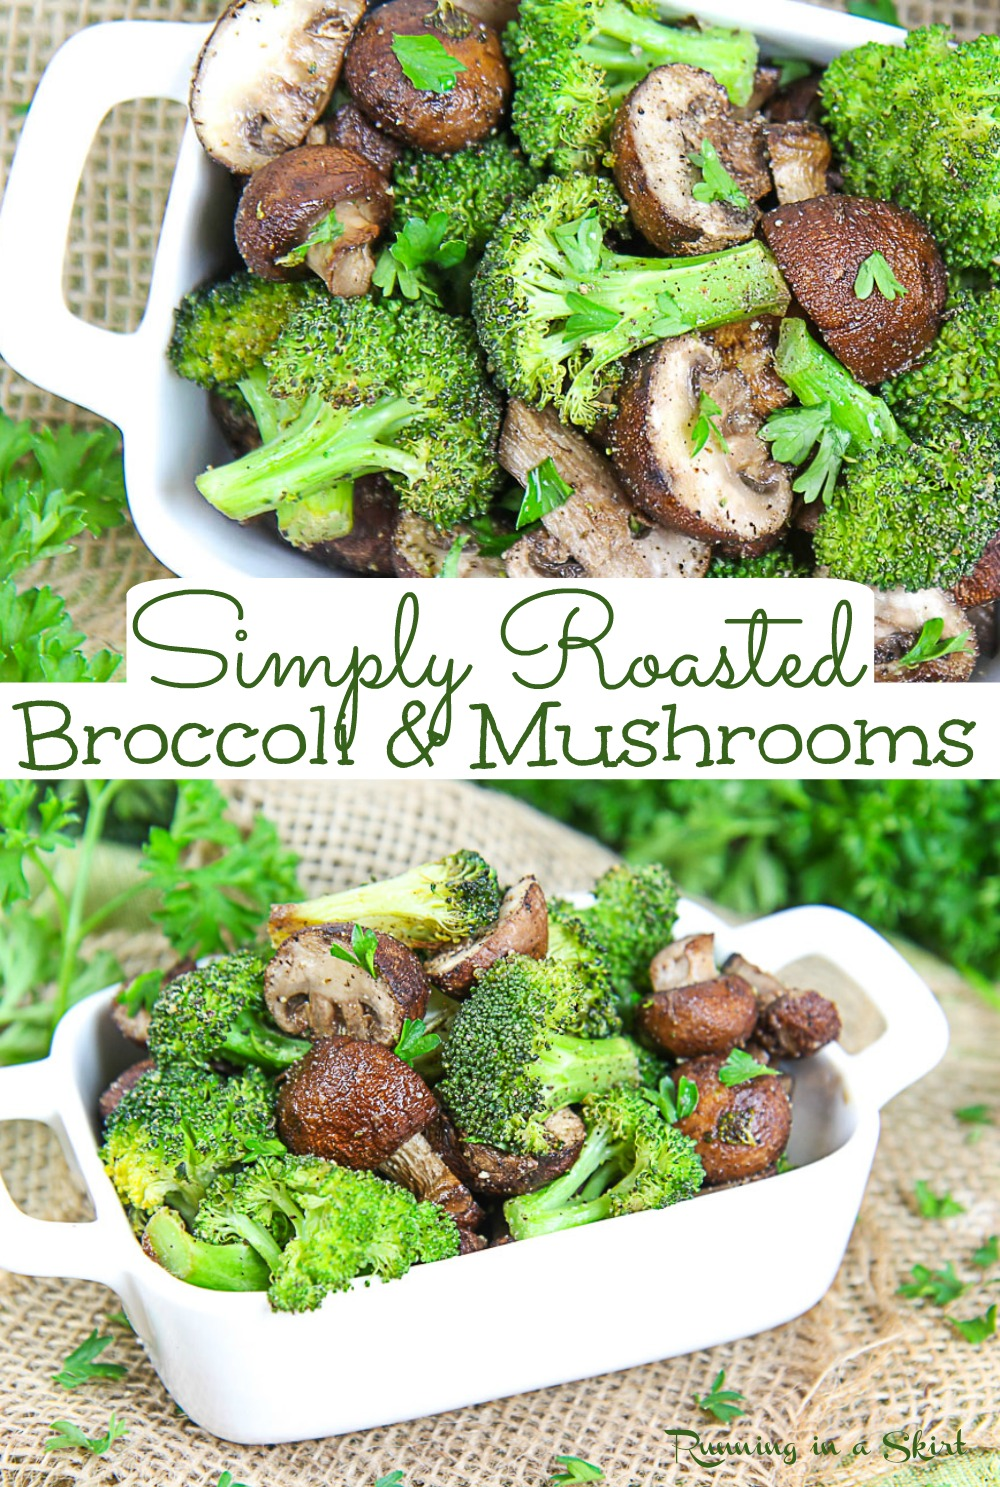 Oven Roasted Mushrooms and Broccoli recipe - Healthy Roasted Broccoli with Mushrooms with garlic - only FOUR INGREDIENTS! A simple roasted vegetable side dish that's healthy, clean eating, low carb, vegan, gluten free, and vegetarian. This healthy side dish is great for weeknights or even holidays. You will love this low carb side dish! / Running in a Skirt #lowcarb #vegetarian #vegan #healthyliving #sidedish #glutenfree #broccoli #mushrooms via @juliewunder